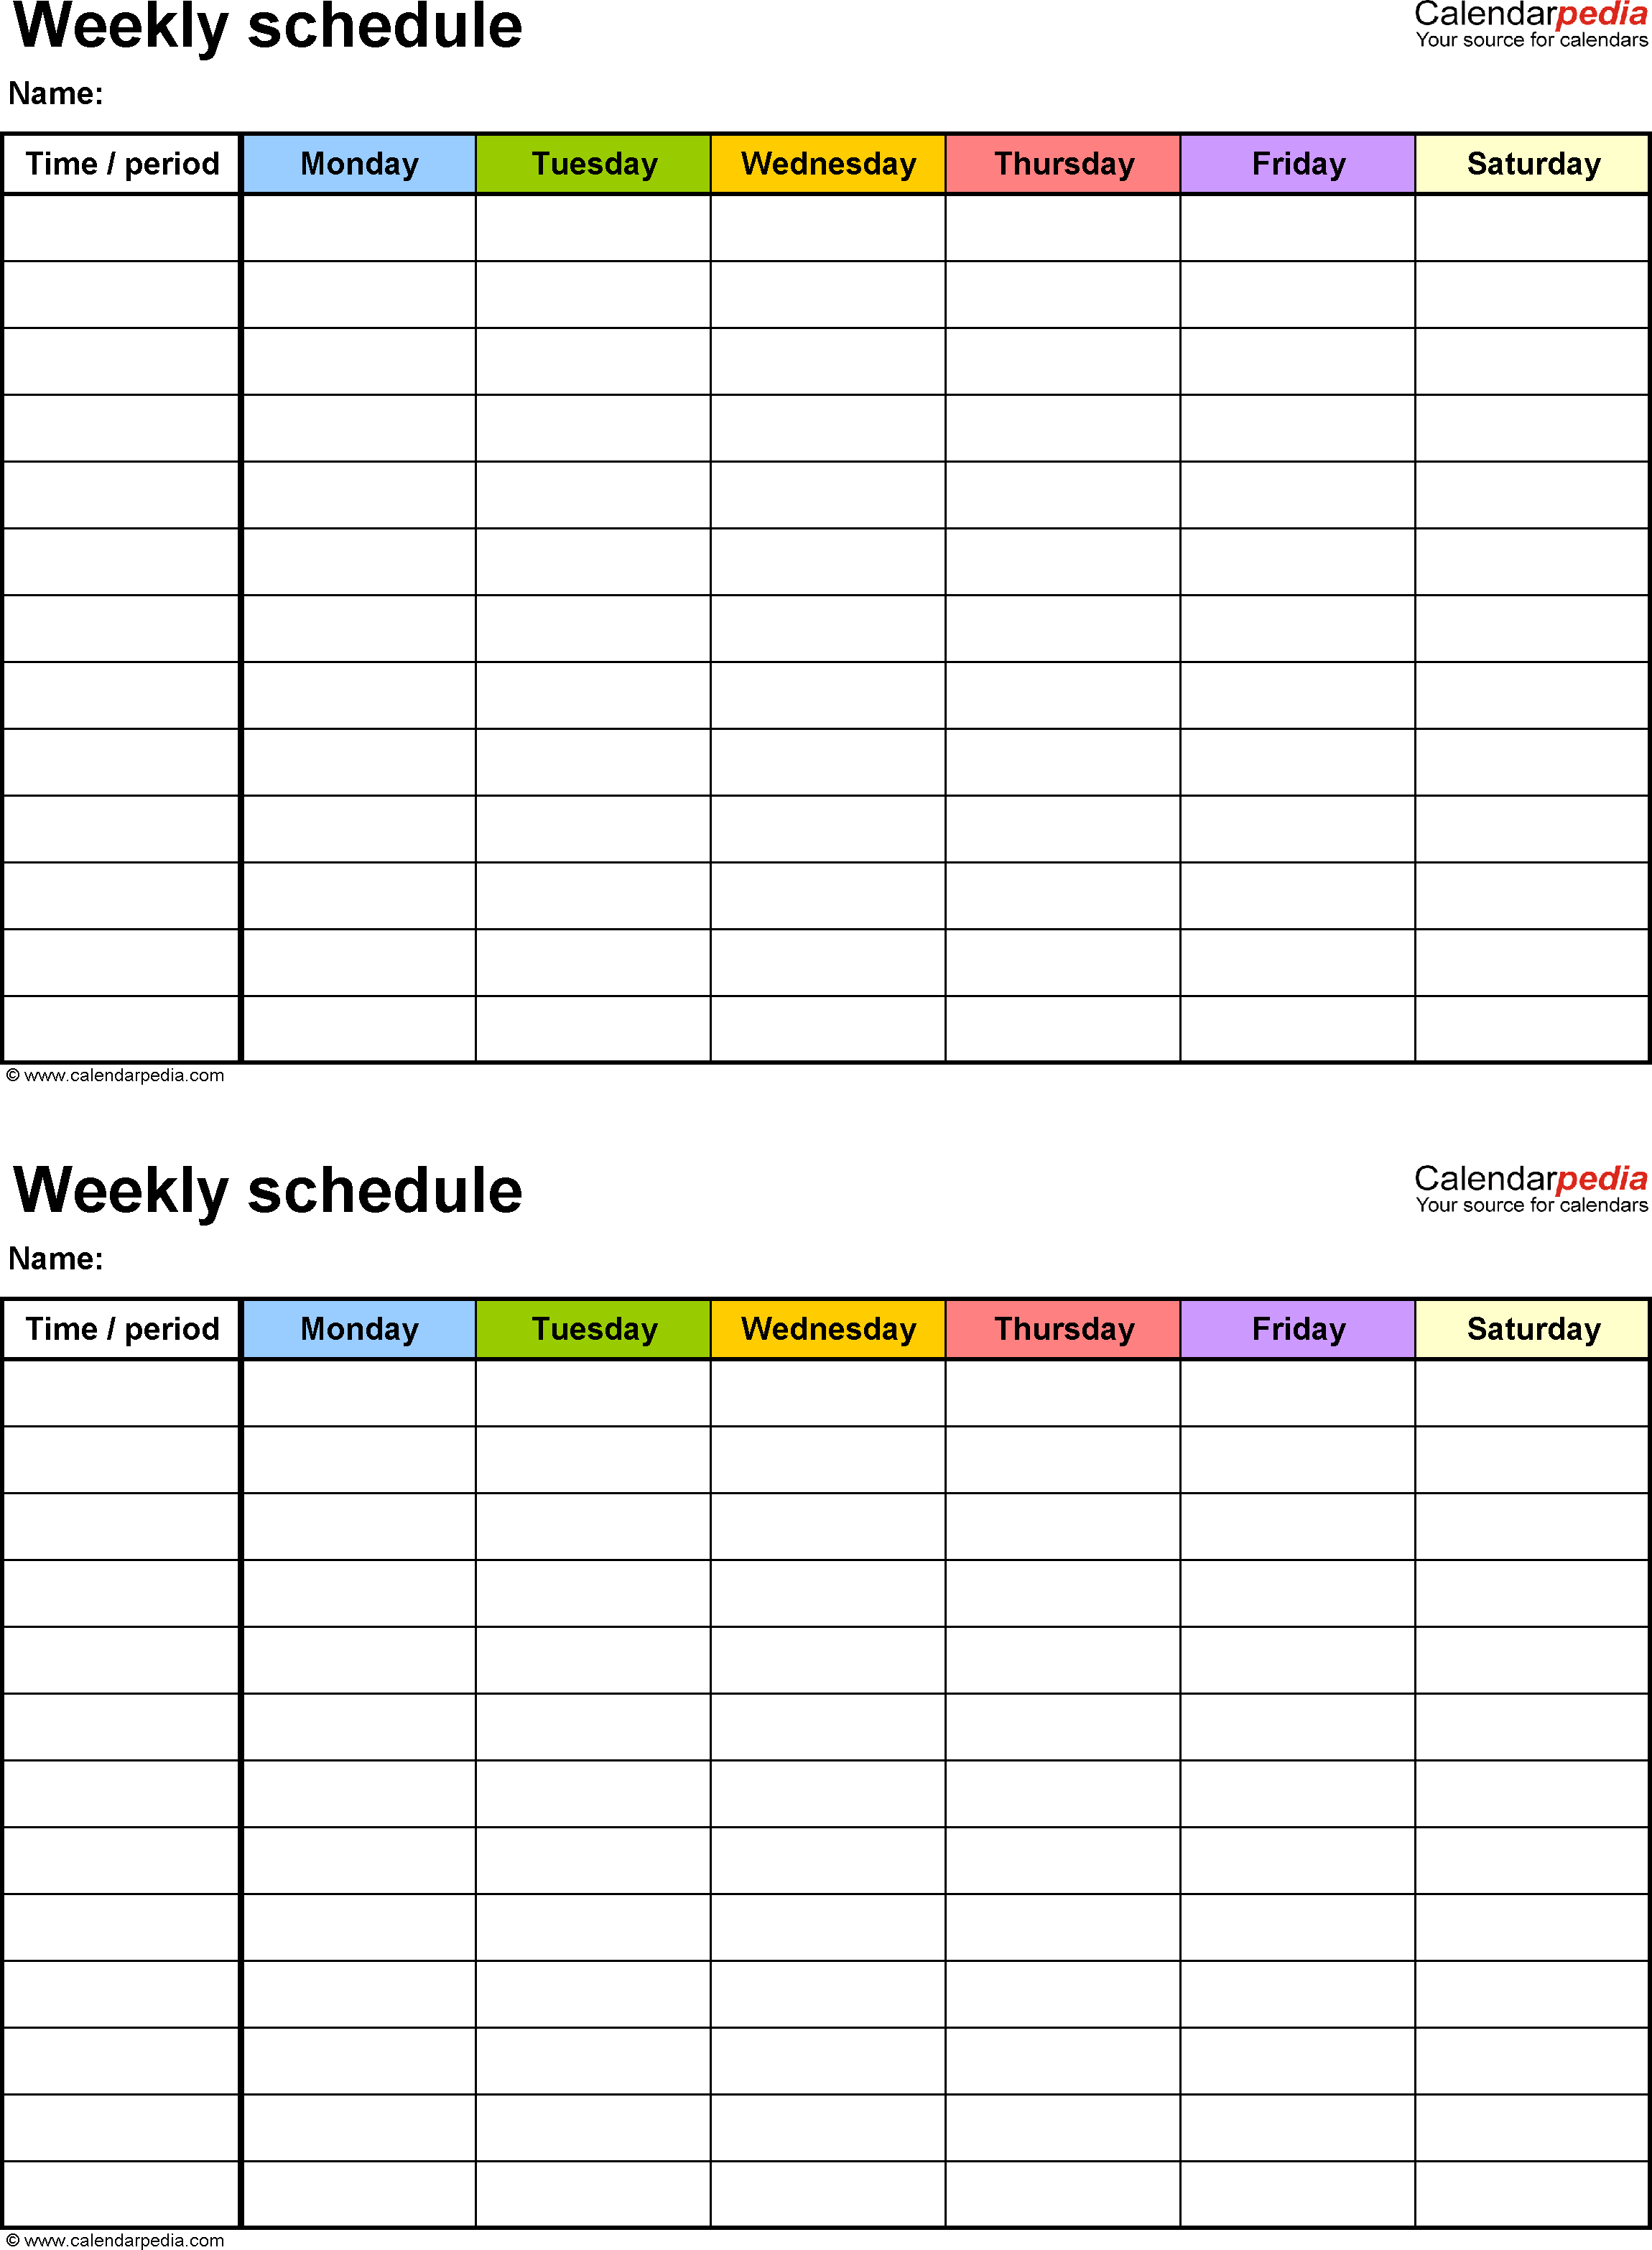 weekly schedule pdf   April.onthemarch.co